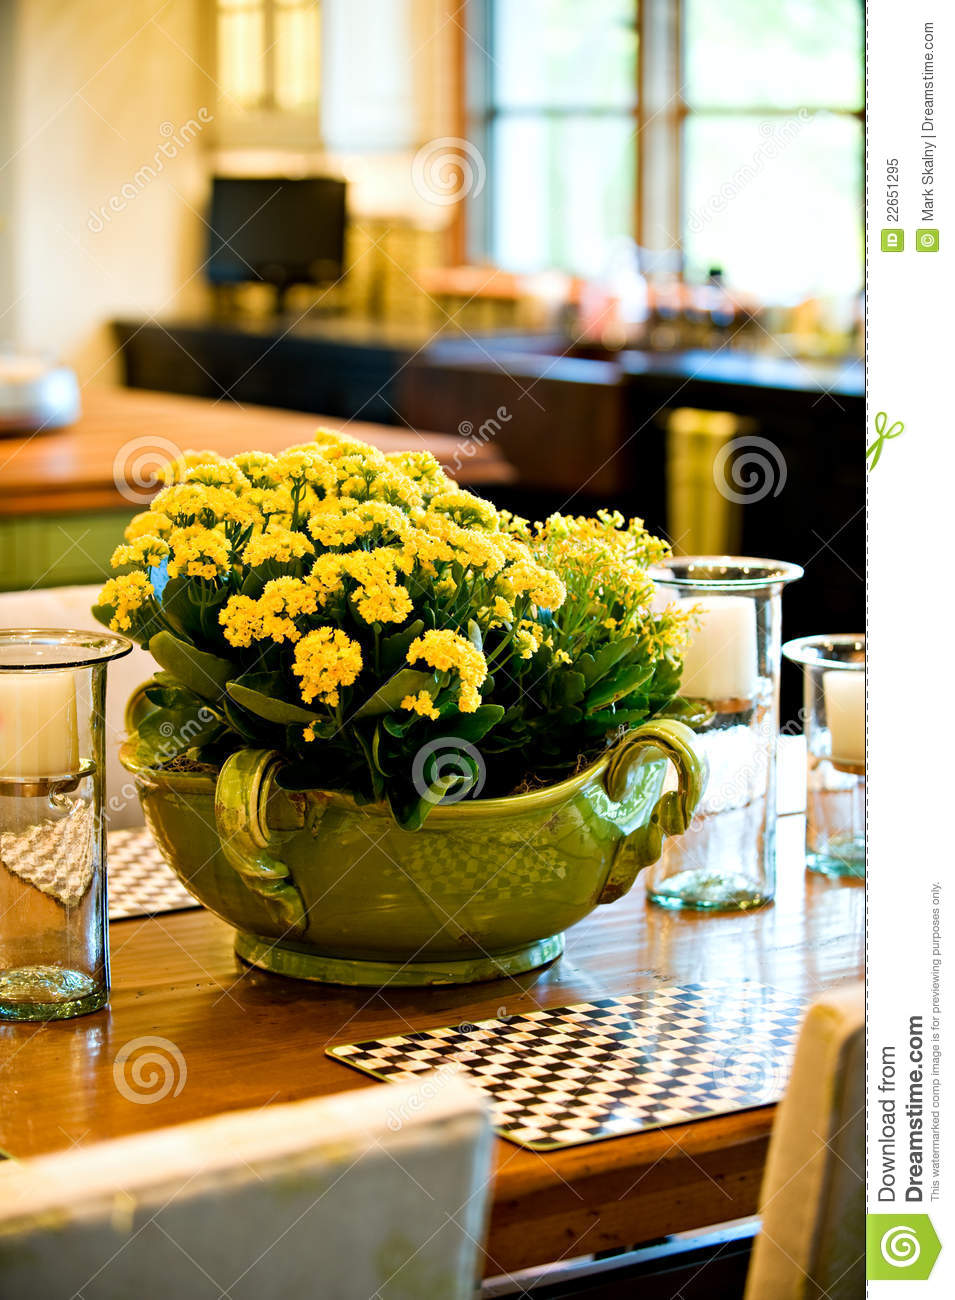 Fresh Flower Arrangement On The Dining Room Table Stock Image Image Of Flowers Clean 22651295